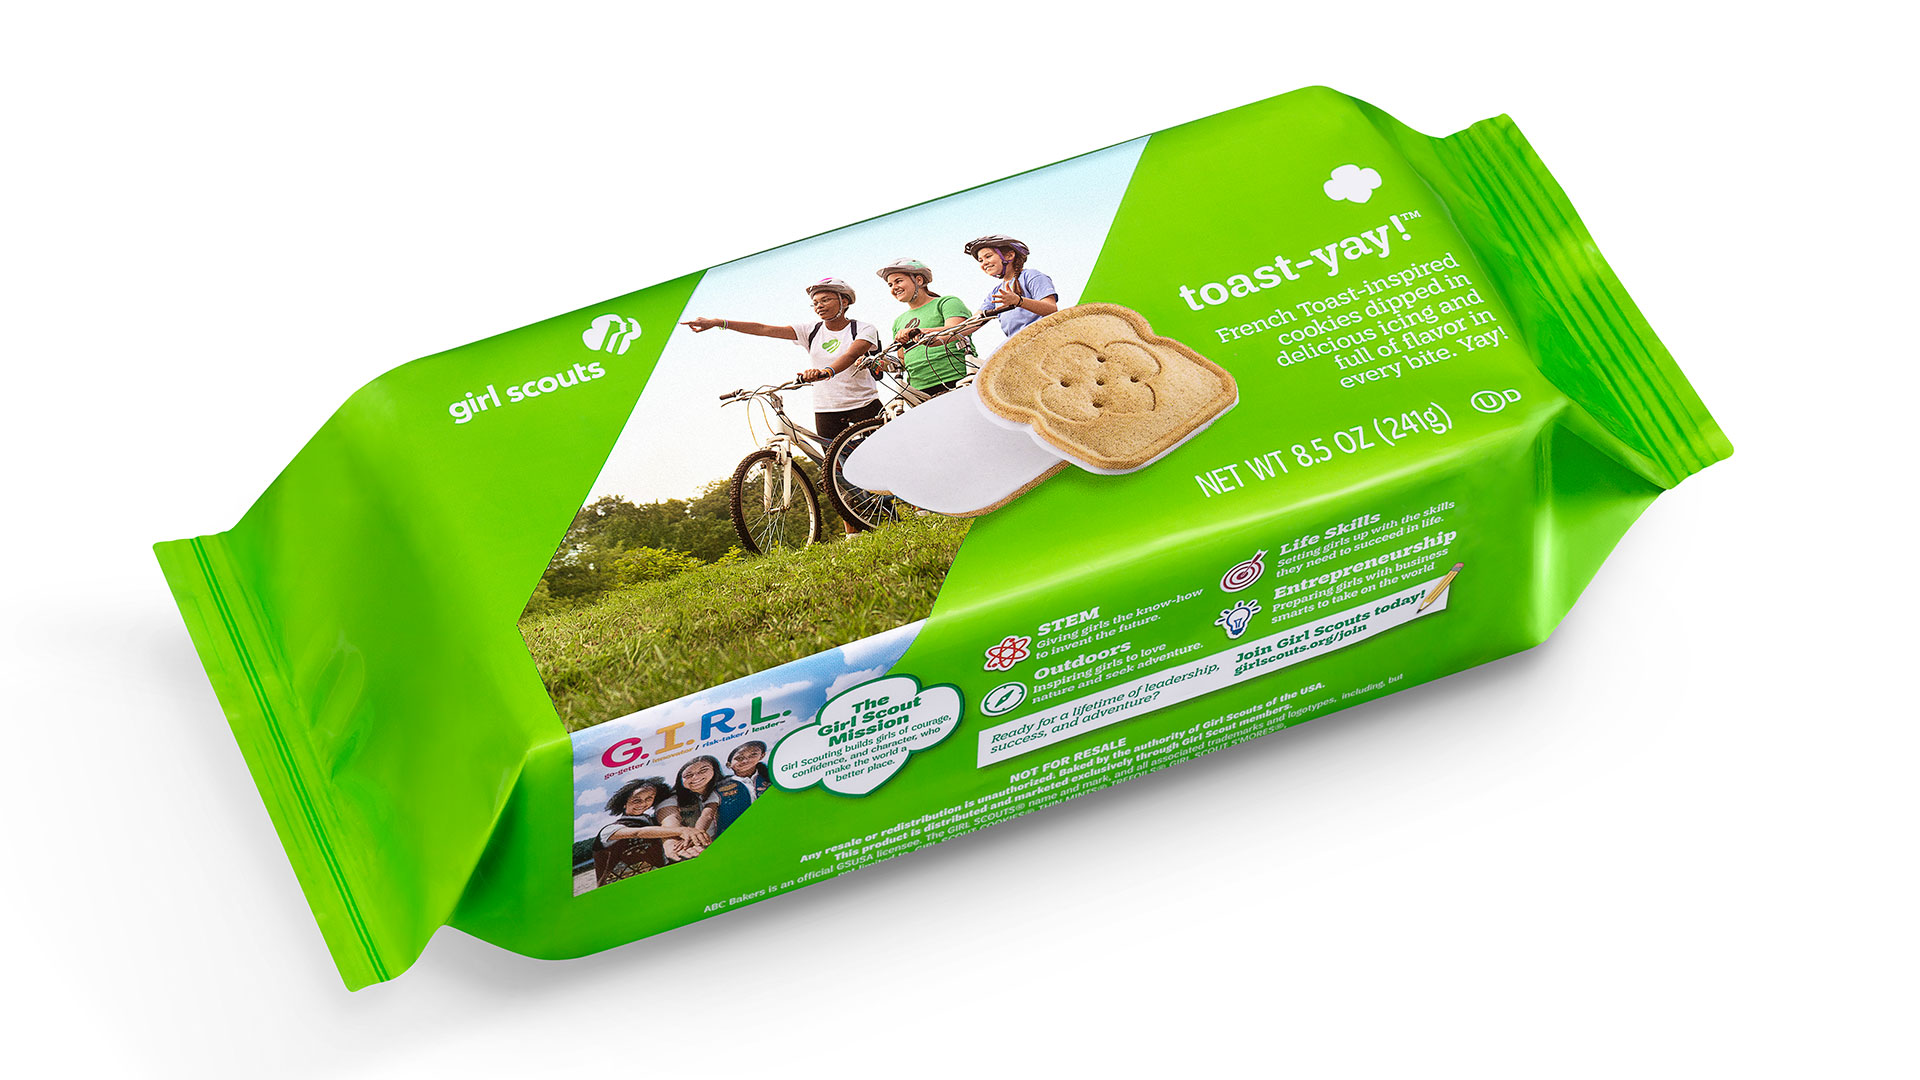 Toast-Yay! Girl Scout Cookies Package